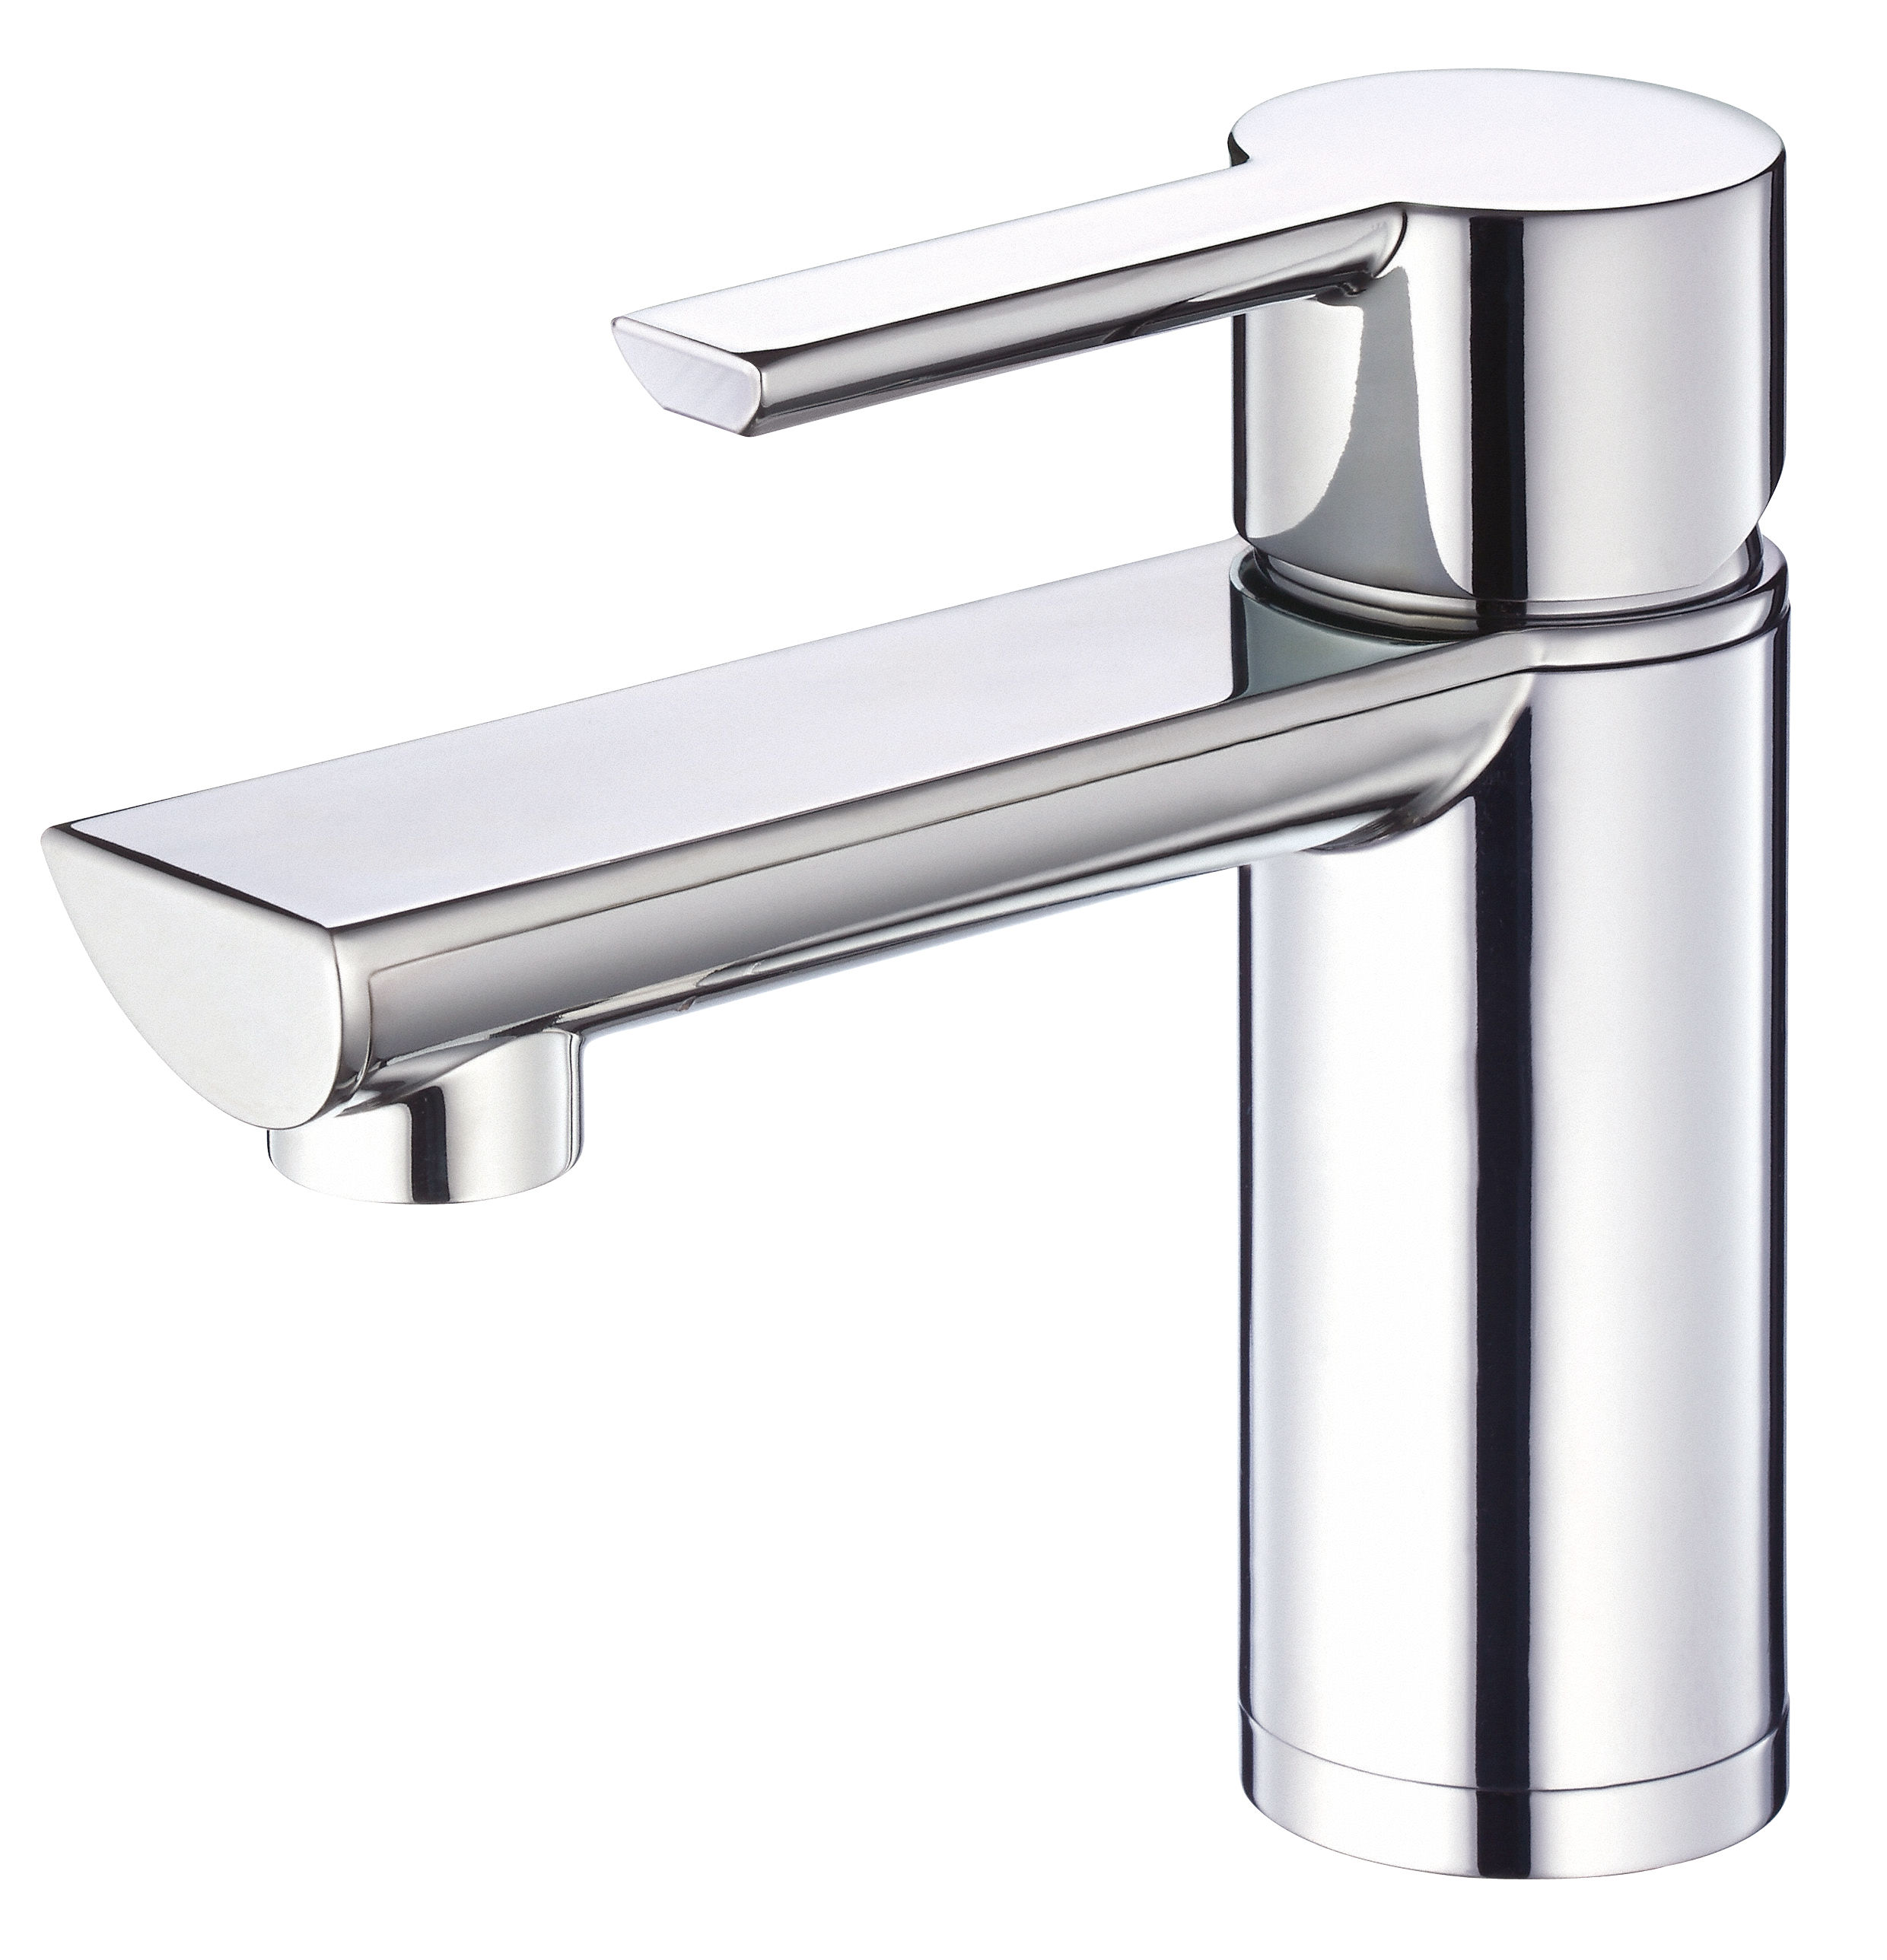 inspirational kitchen idea images blog in gooseneck brushed elegant outdoor parts nickel shower faucet for with com grohe america of groheamerica